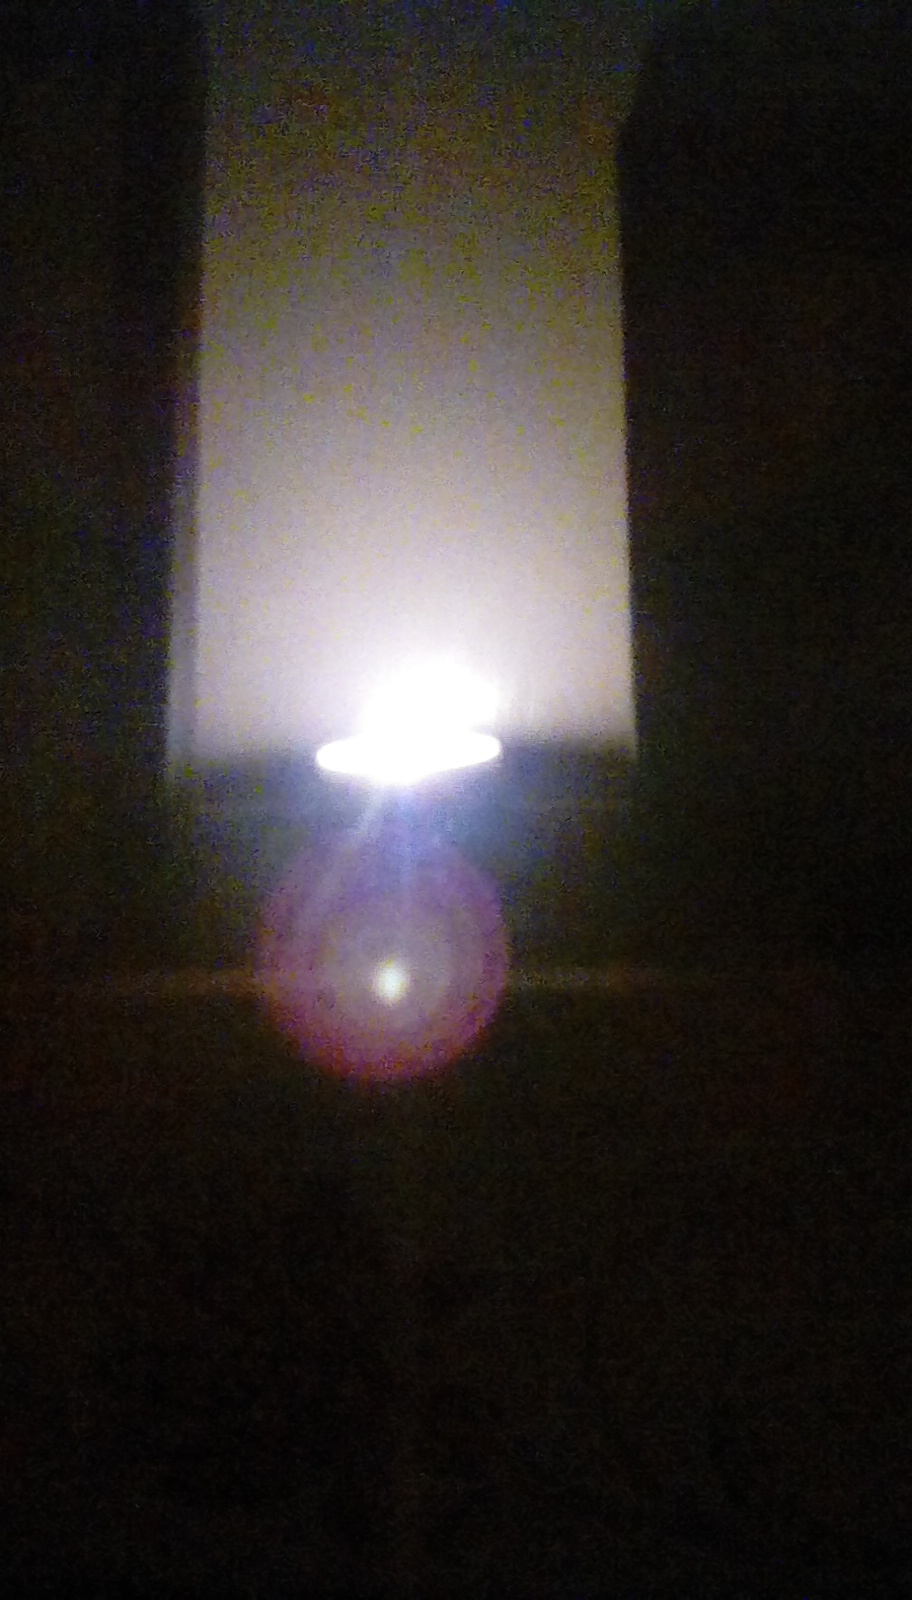 Candle in an eggcup